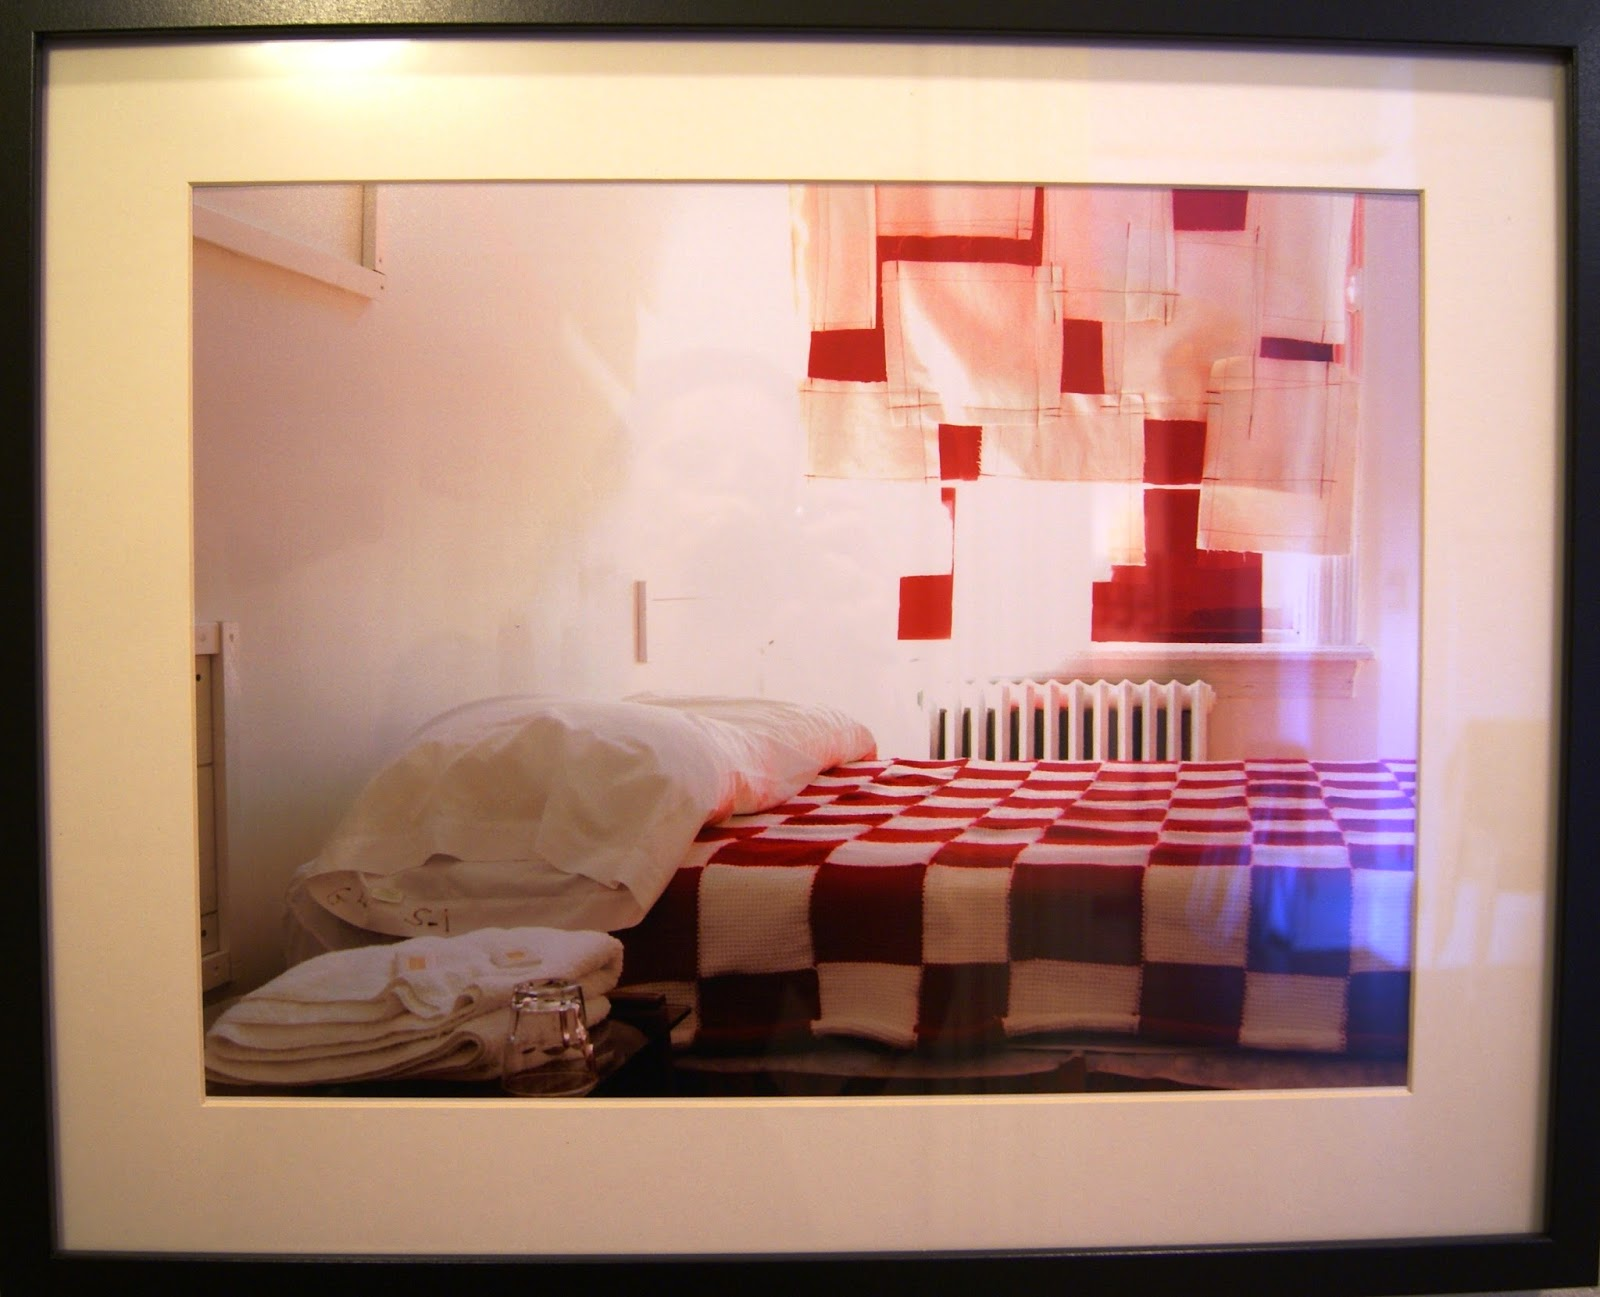 125/THEN/NOW/NEXT Exhibit at the Gladstone Hotel on West Queen West in Toronto, Art, Culture, Exhibition, Artmatters, History,Architecture, Ontario, Canada, The Purple Scarf, Melanieps, Photography, Vouge Magazine, Nuit Blanche, Pamela Gawn, Room, Local, Designed